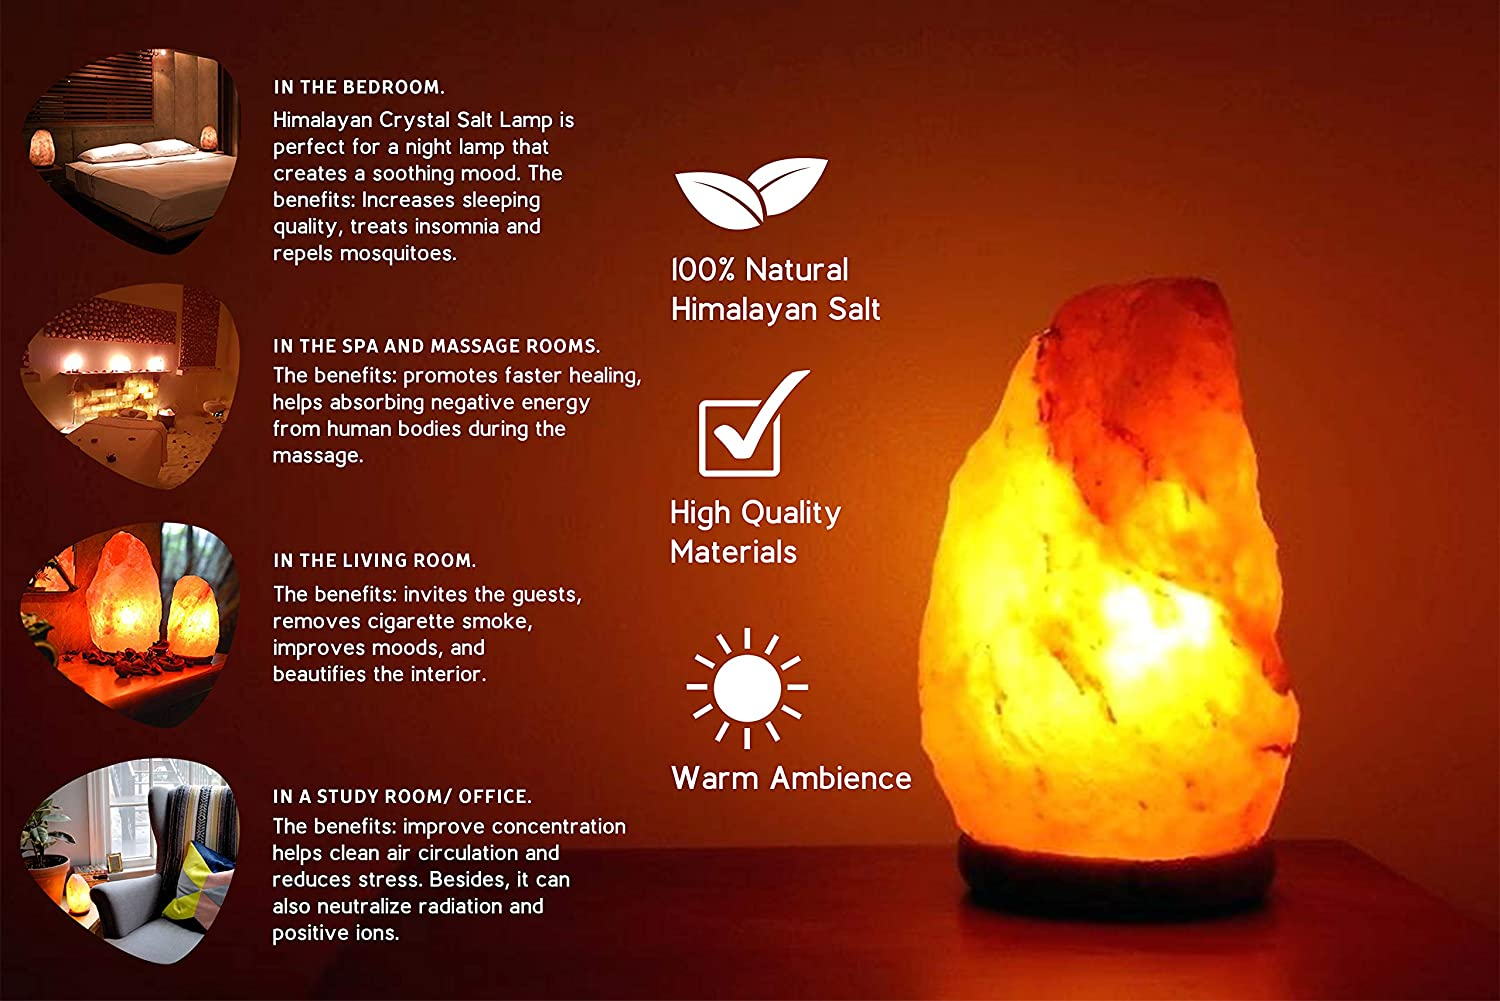 5-7 Lbs Square Metal Basket Bulb with 6-8 Inches UL Electric Corded Himalayan Crystal Lava Salt Lamp A-STAR TM Natural Salt Lamp with On and Off Switch//Dimmer